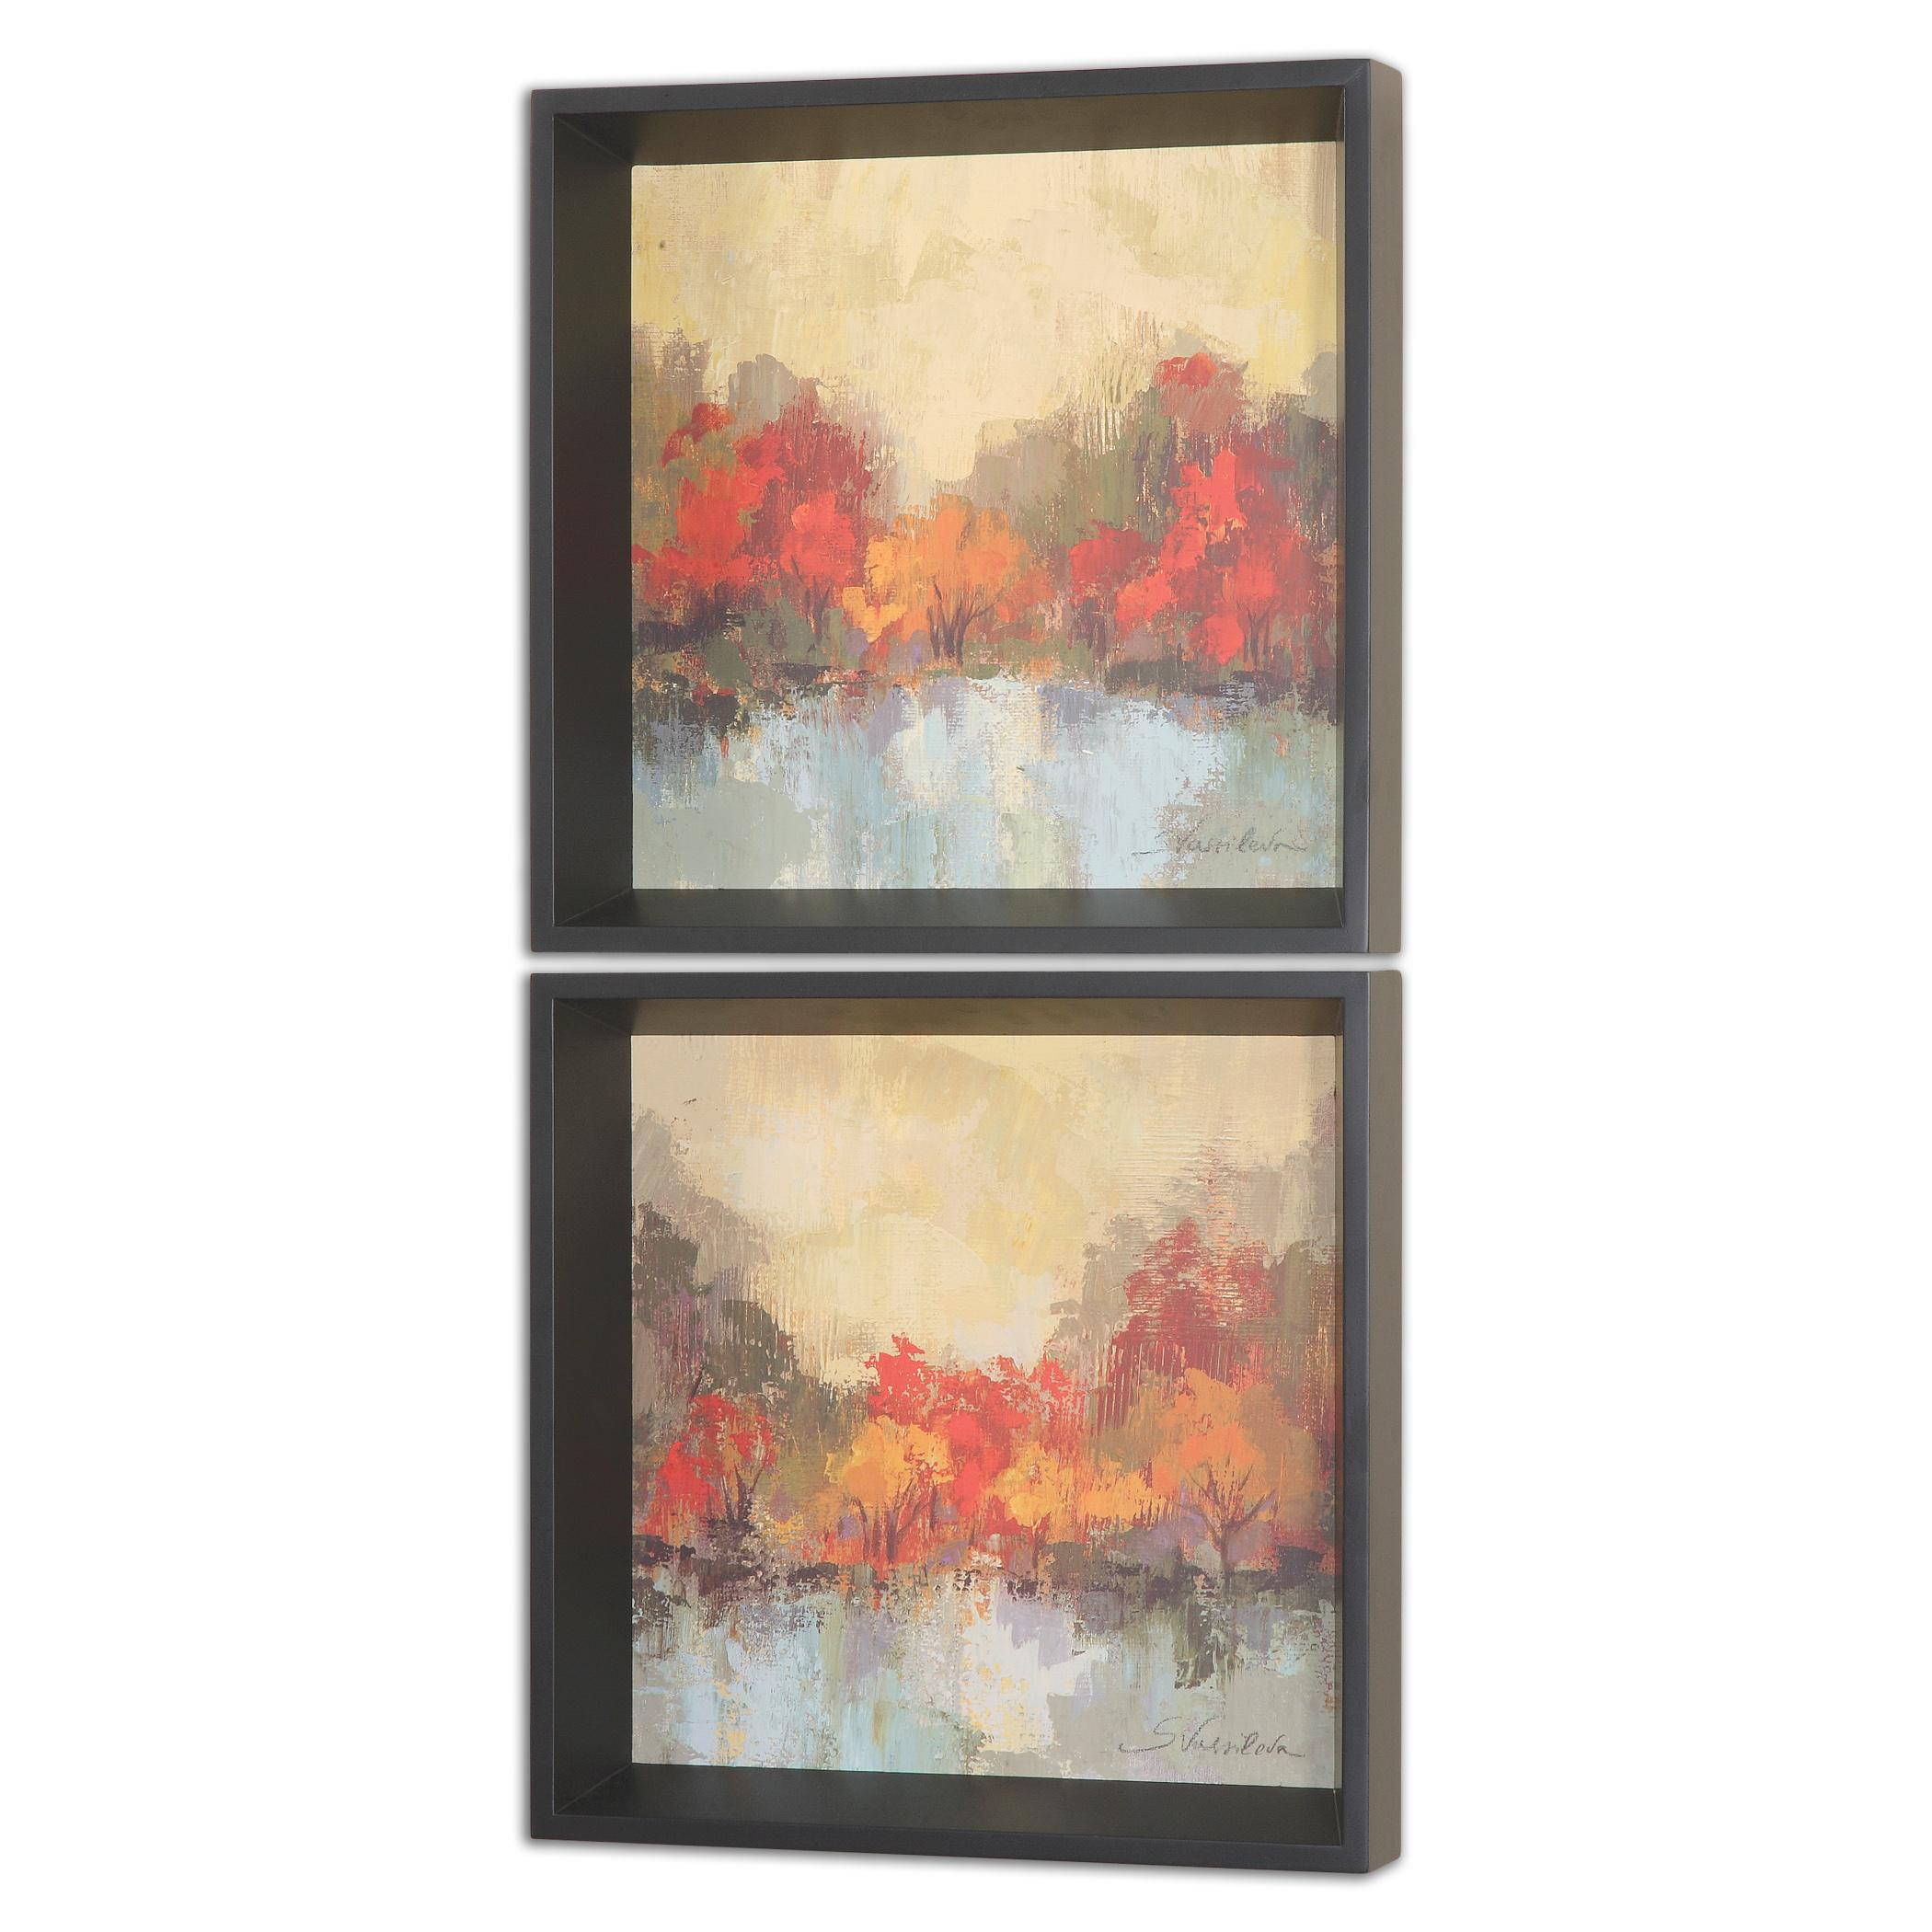 Uttermost Art Fall Riverside Wall Art Set of 2 - Item Number: 55013